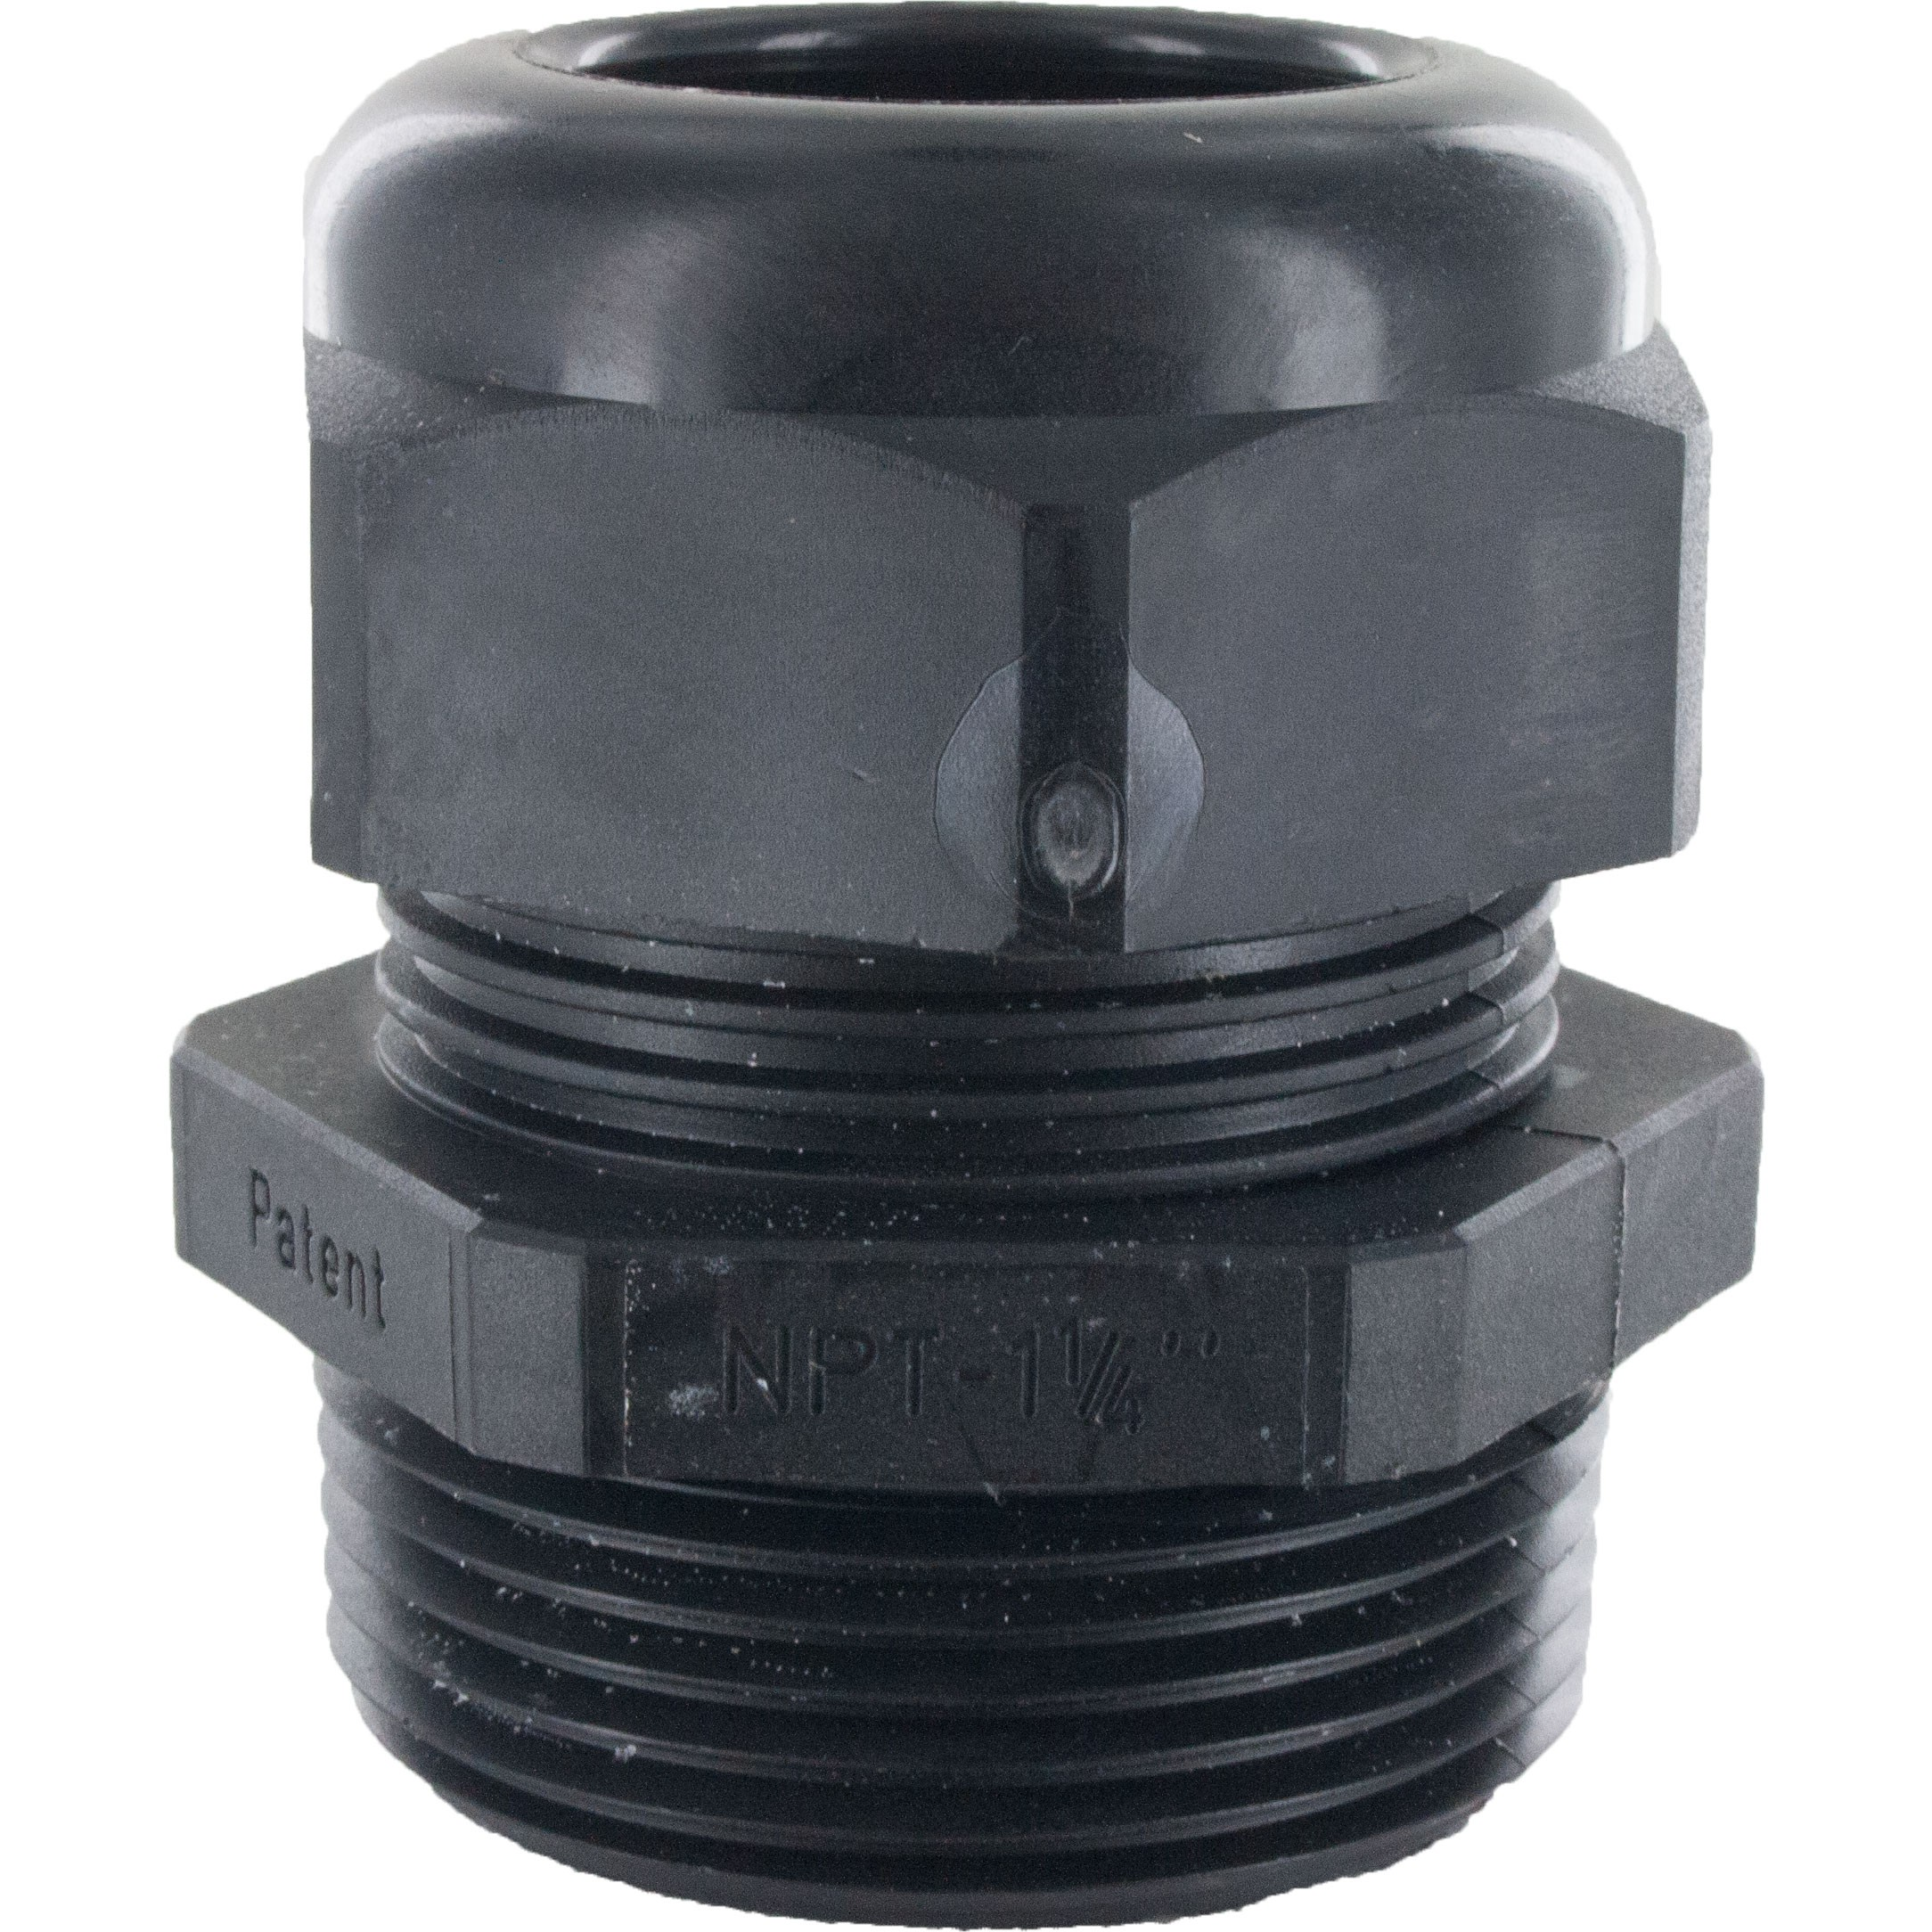 "Nylon Dome Cap Cable Gland 1-1/4"" NPT .70-.98"" Black"